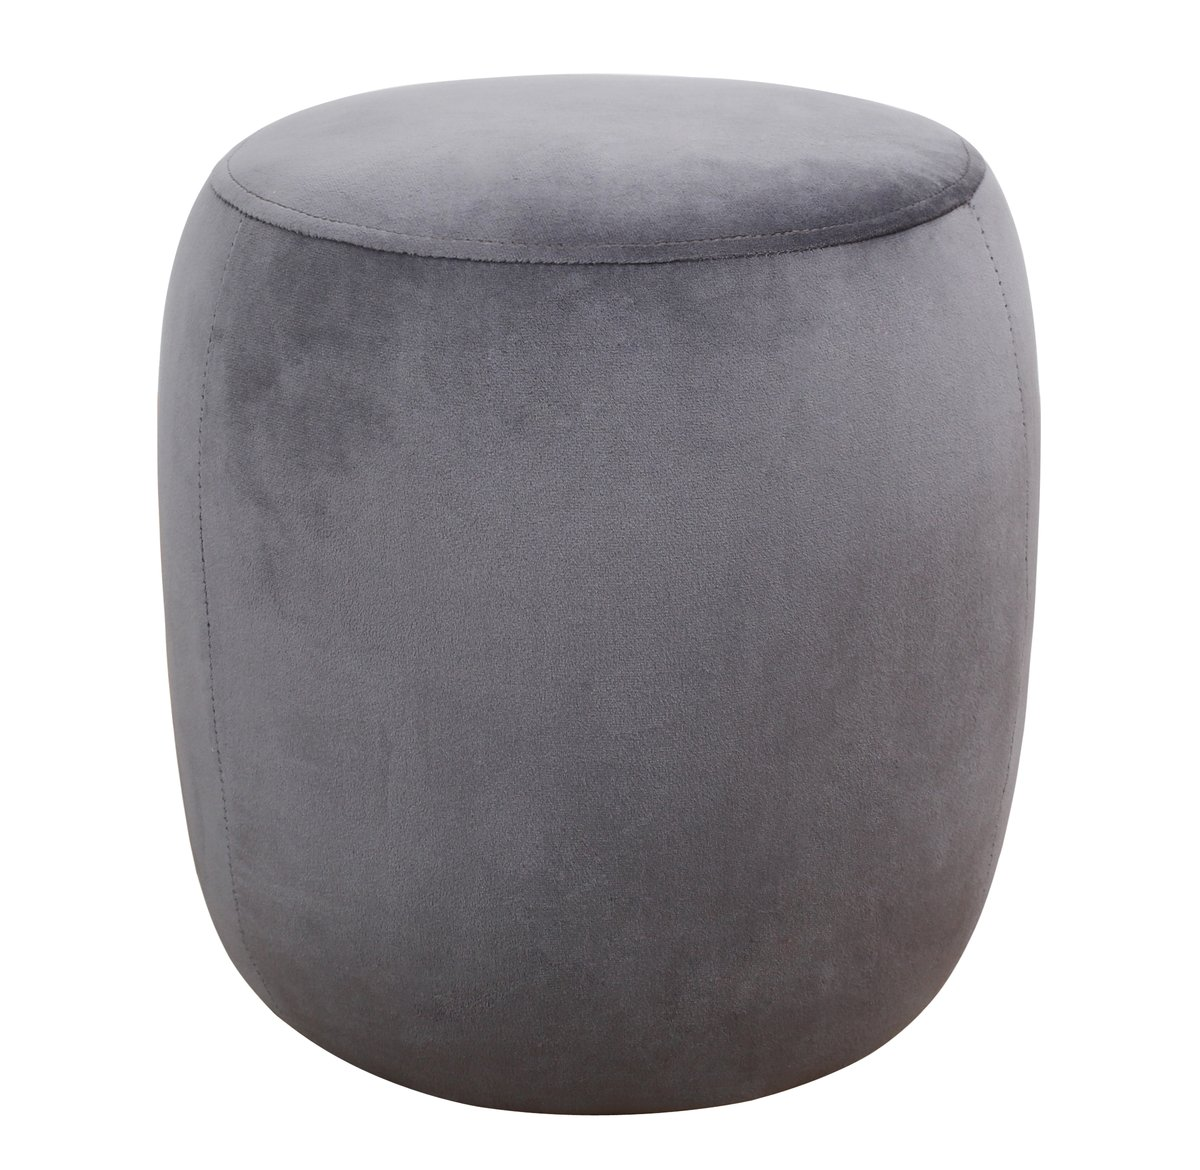 willow grey velvet ott designdistrict tov signy drum accent table unfinished dining legs sofa tables yellow retro low for living room handmade coffee ideas ballard designs stools